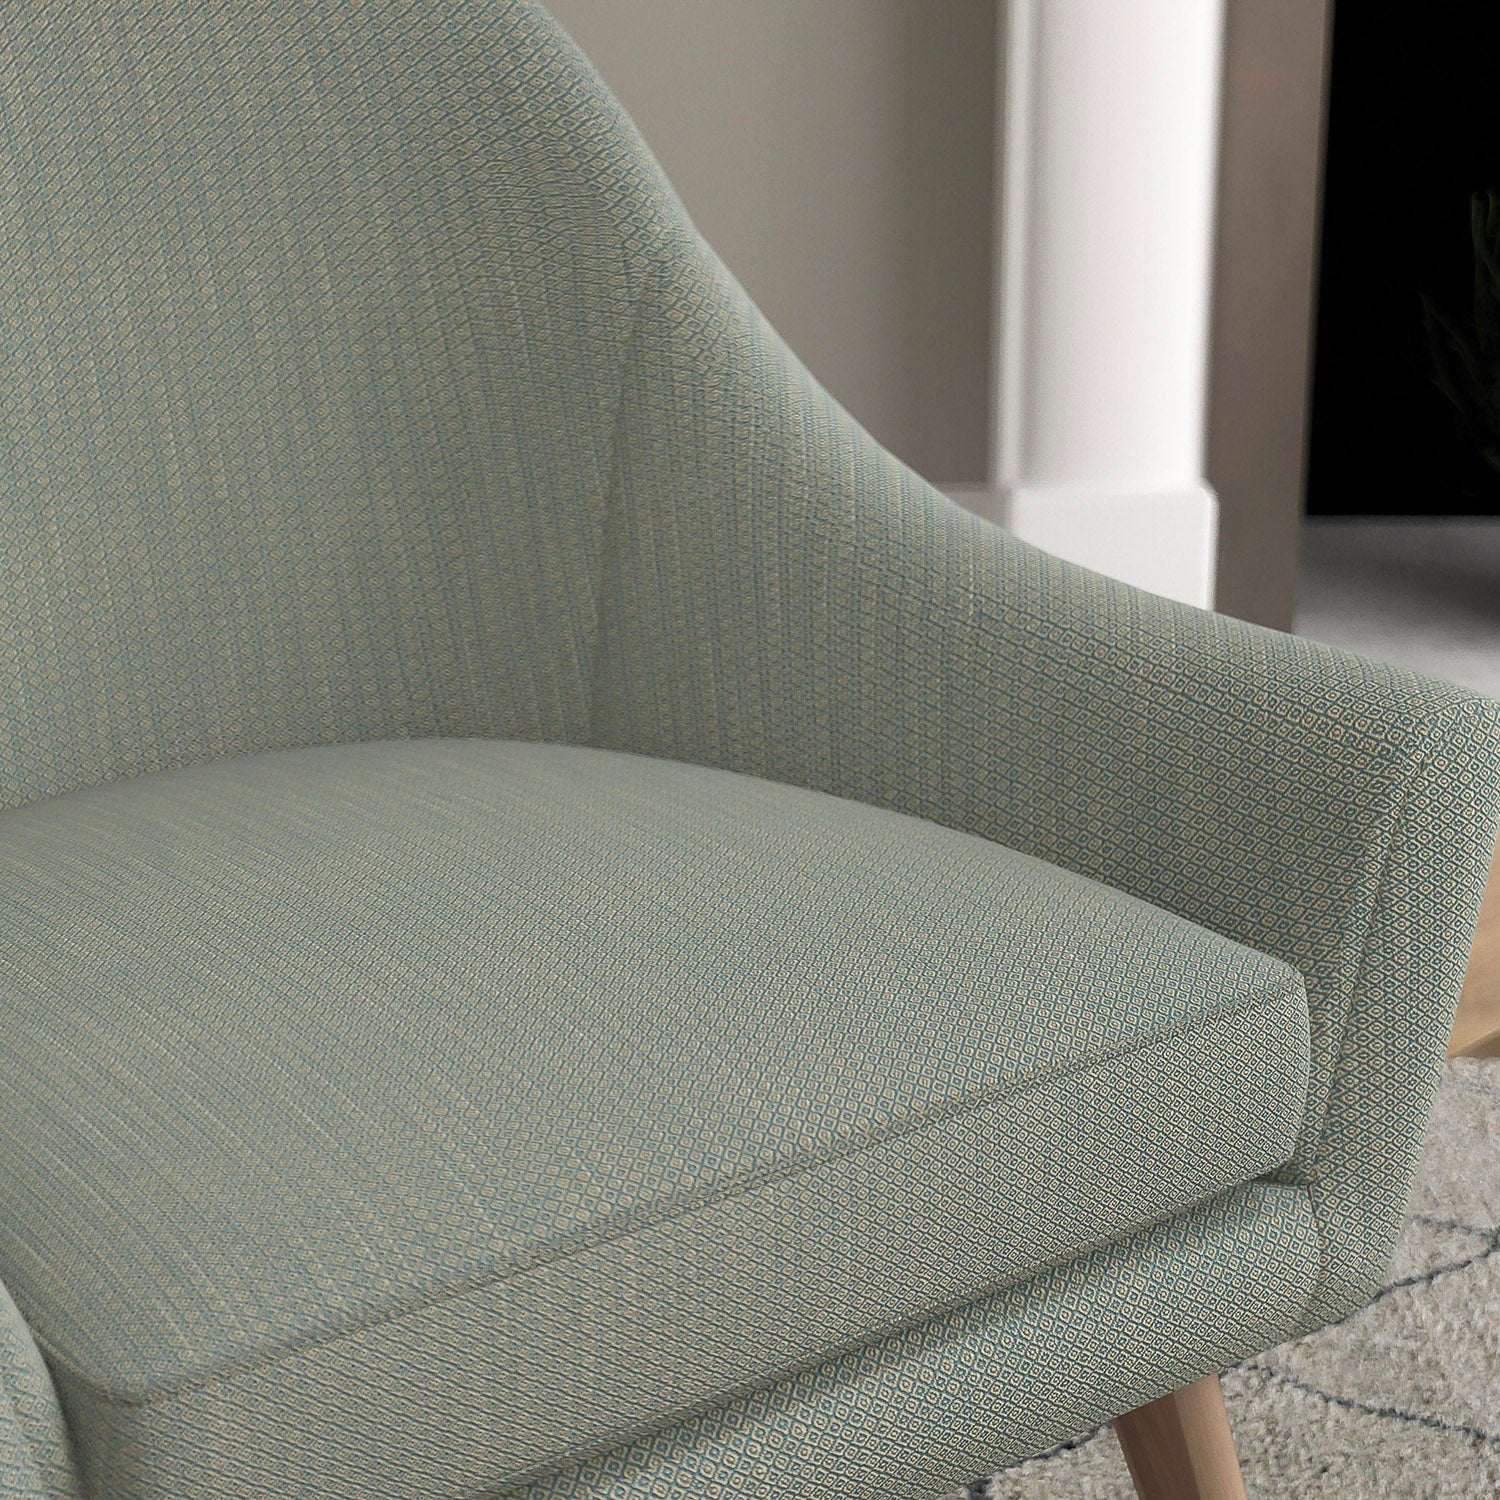 Chair with a blue and neutral upholstery fabric with a small diamond weave fabric